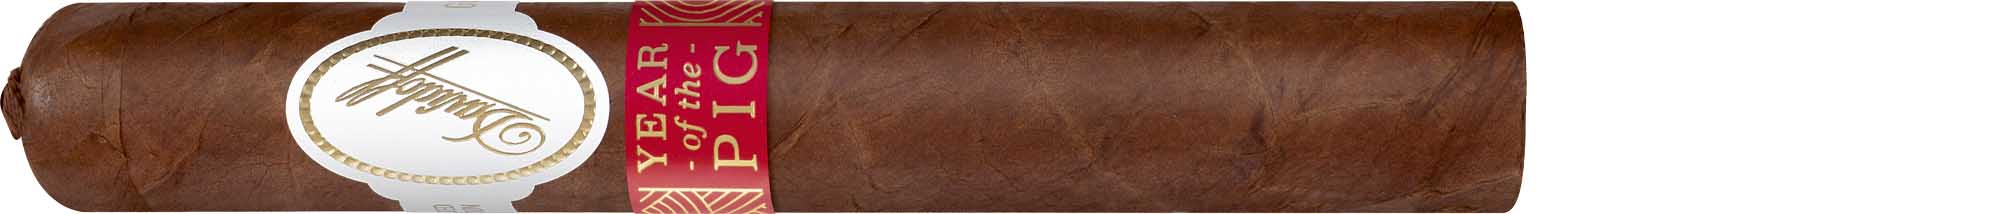 Davidoff Year of the Pig Limited Edition 2019